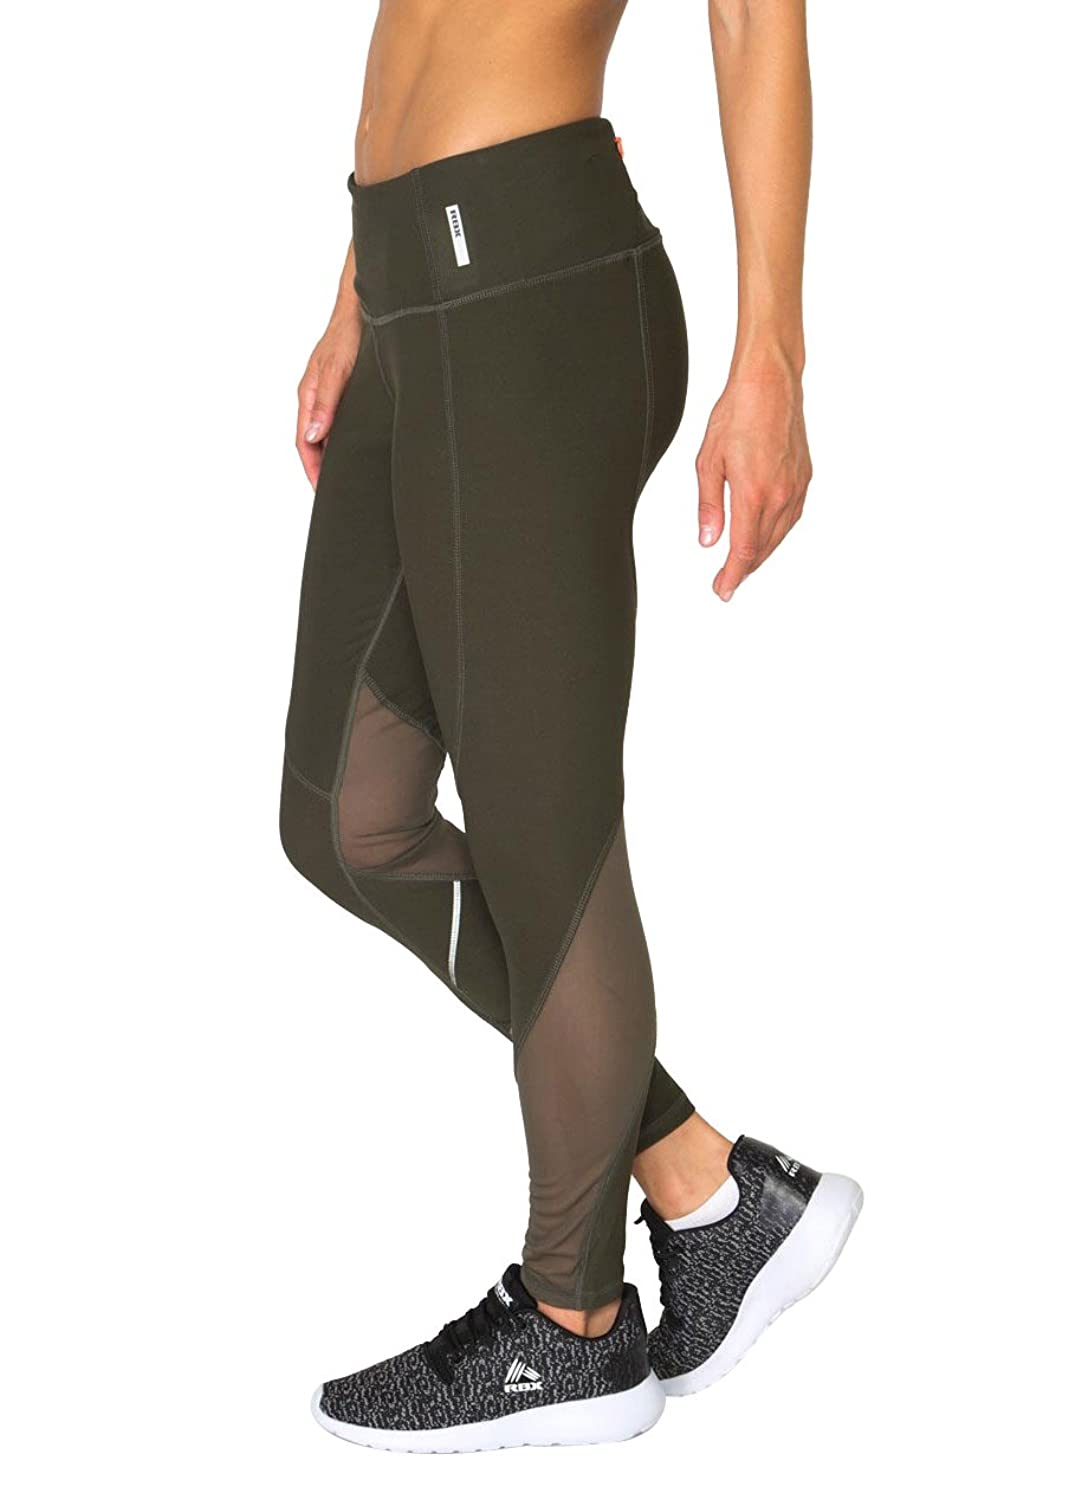 RBX Active Women's Spliced Legging with Mesh and Reflective Tape